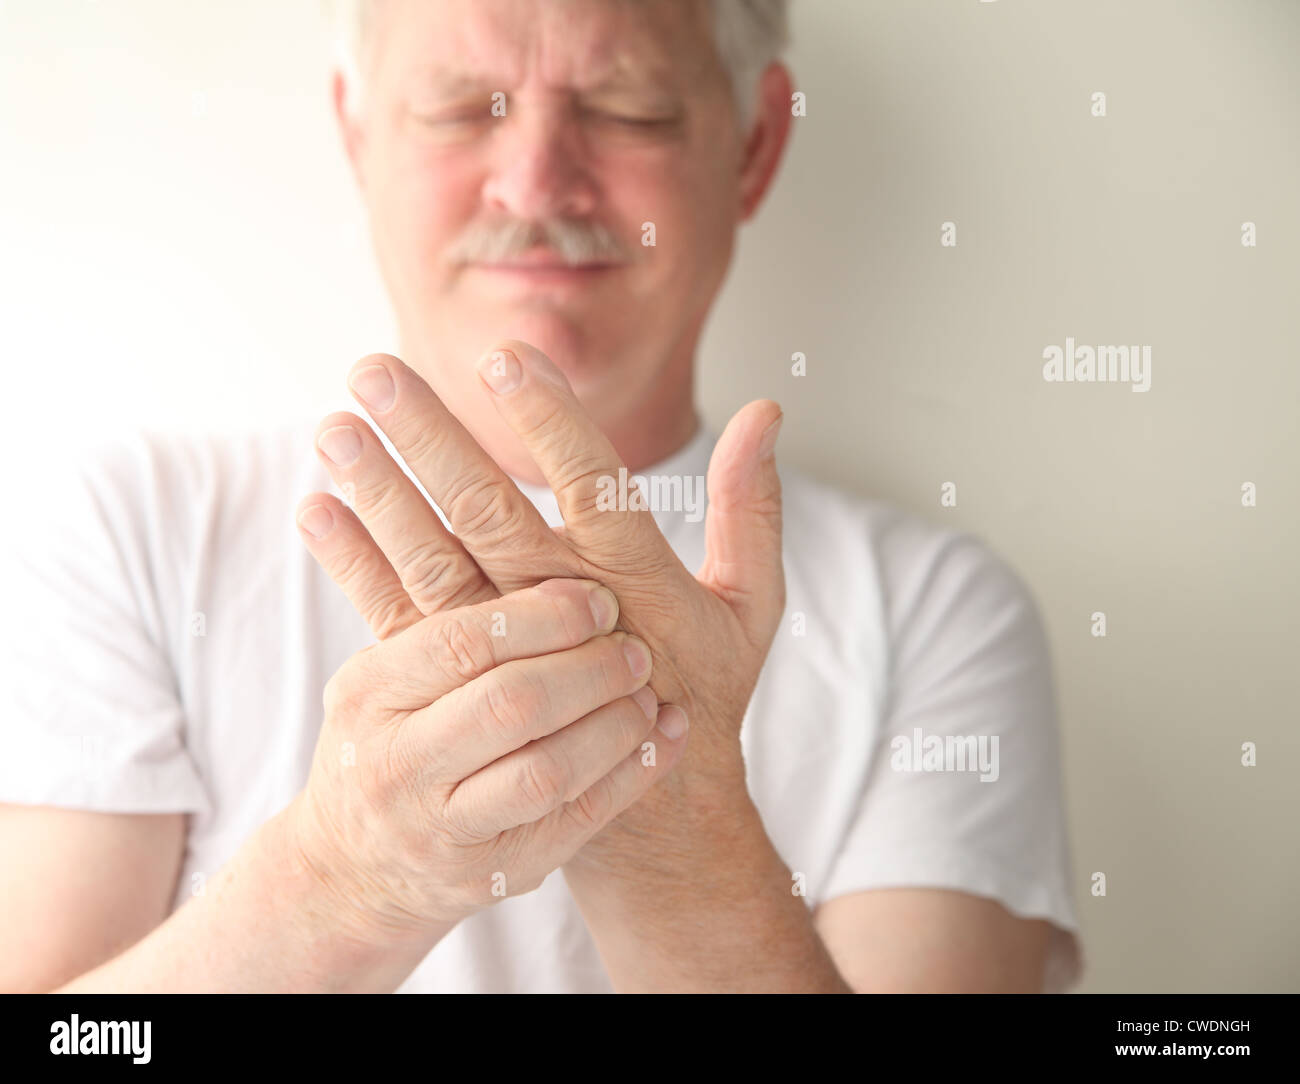 an older man has numbness and tingling in his hand - Stock Image